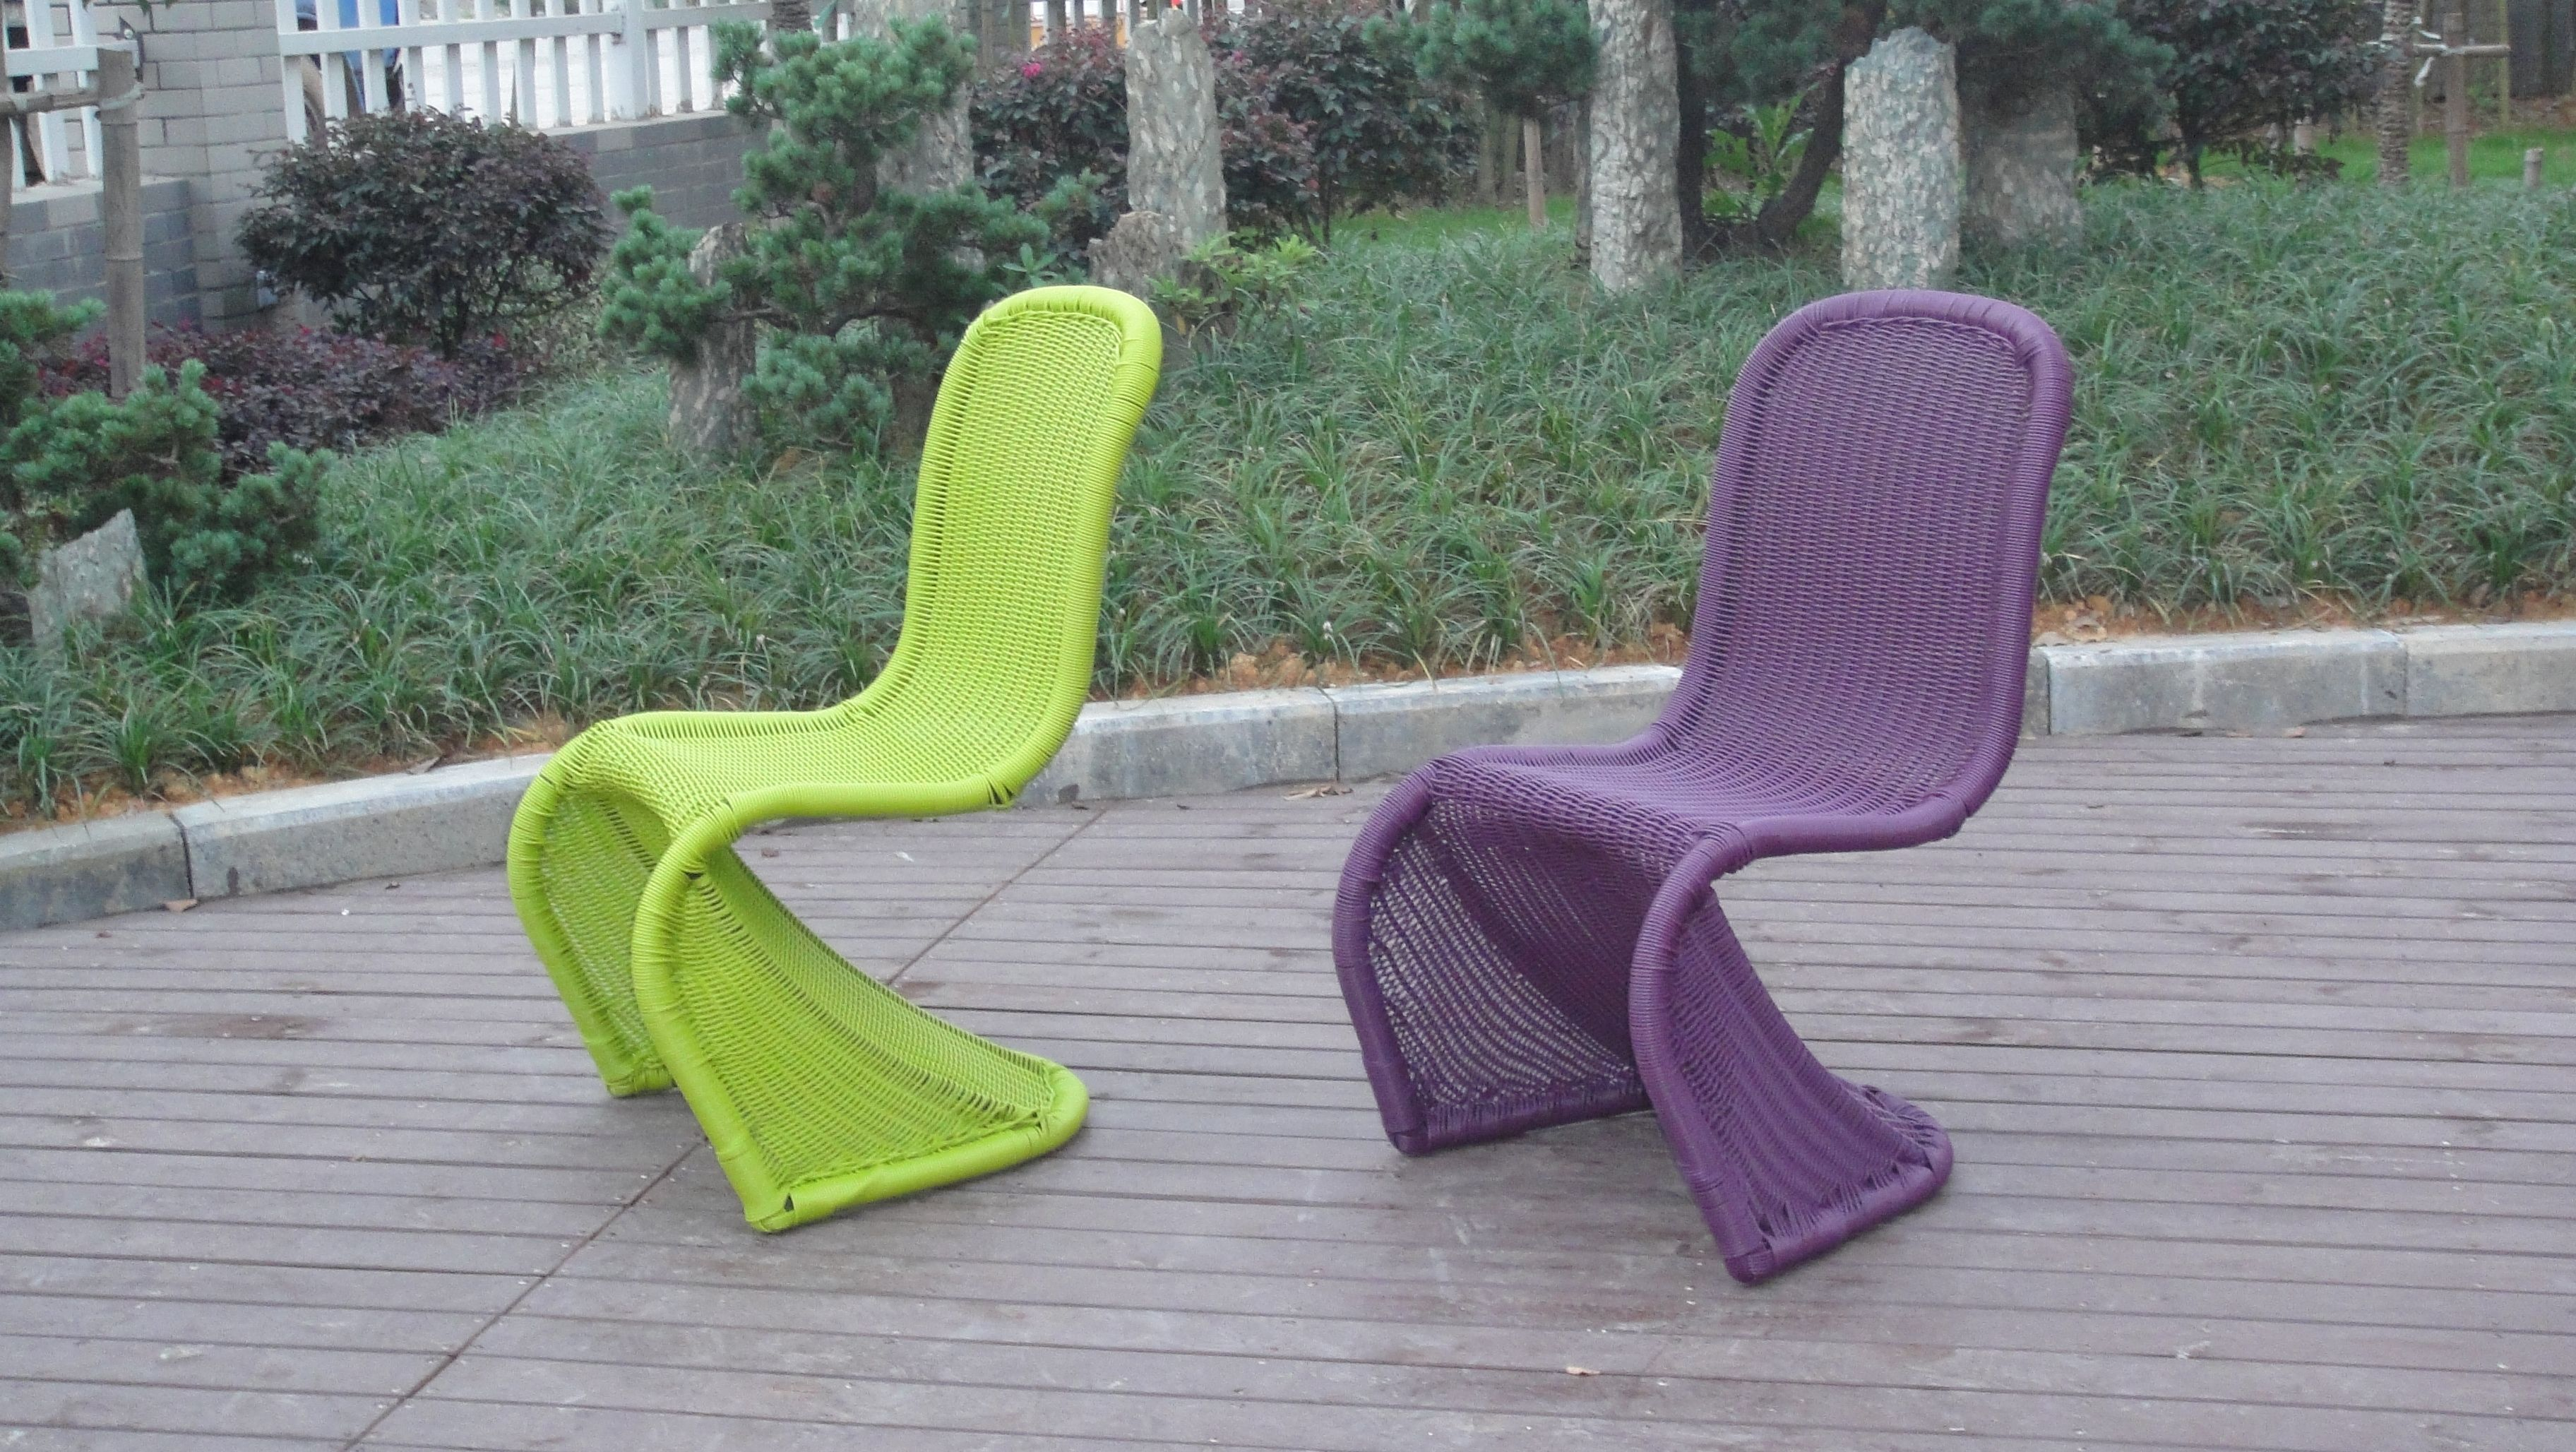 Genial TG 11099 Wicker Chair In Different Color From Trygo Outdoor Furniture